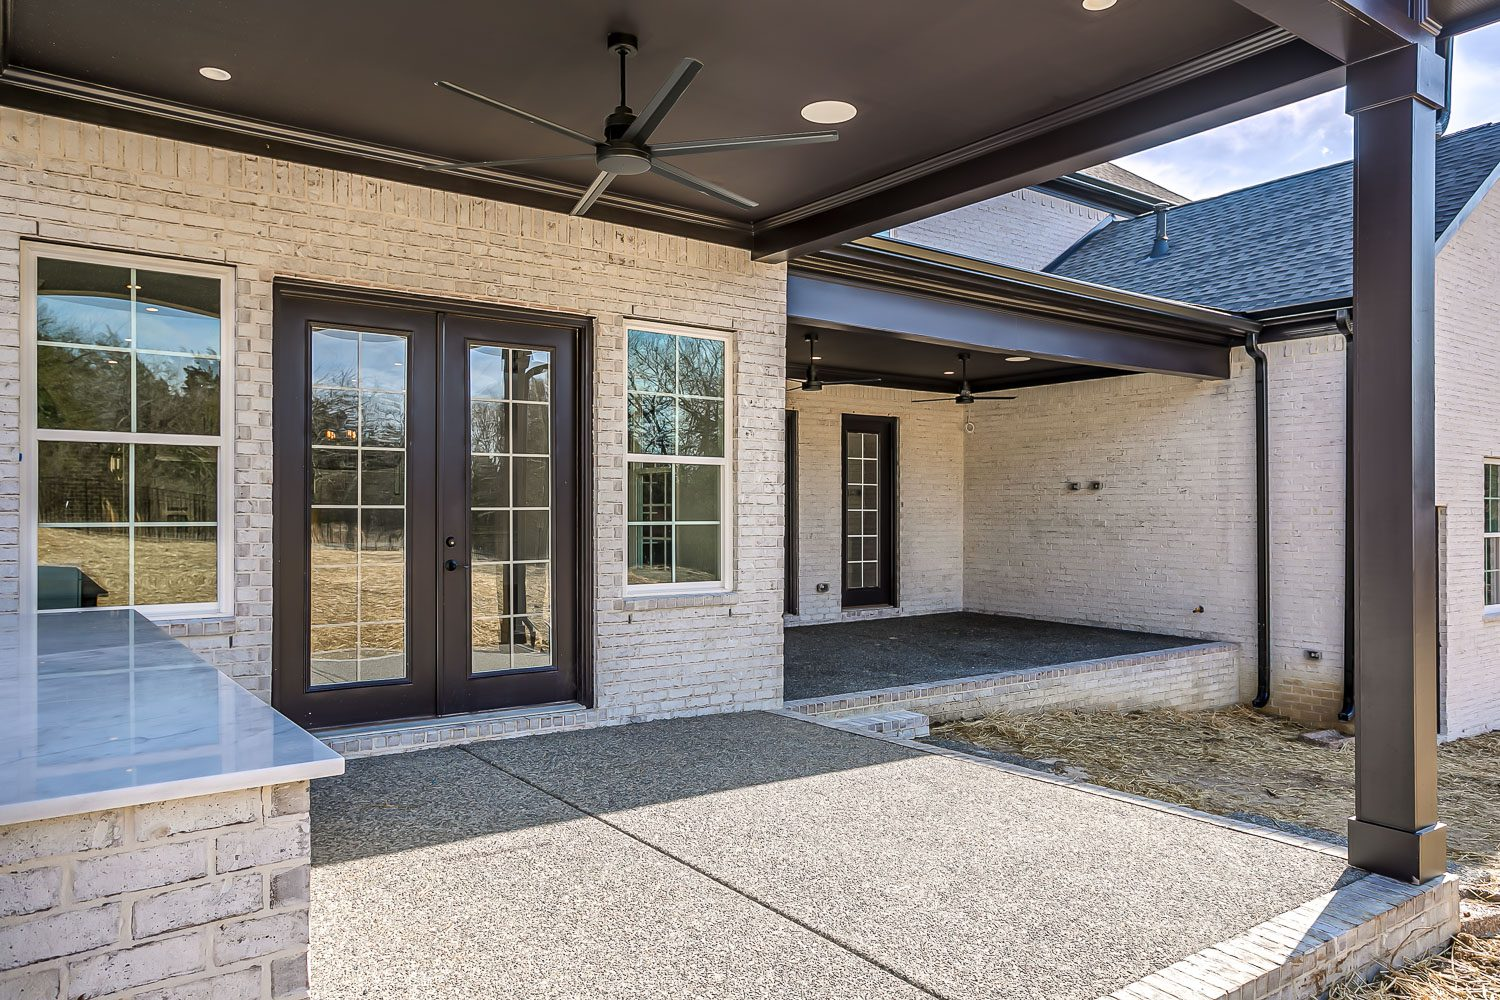 Luxury - Premier, High-end home builders for luxury homes - luxury home builder   Nashville, TN